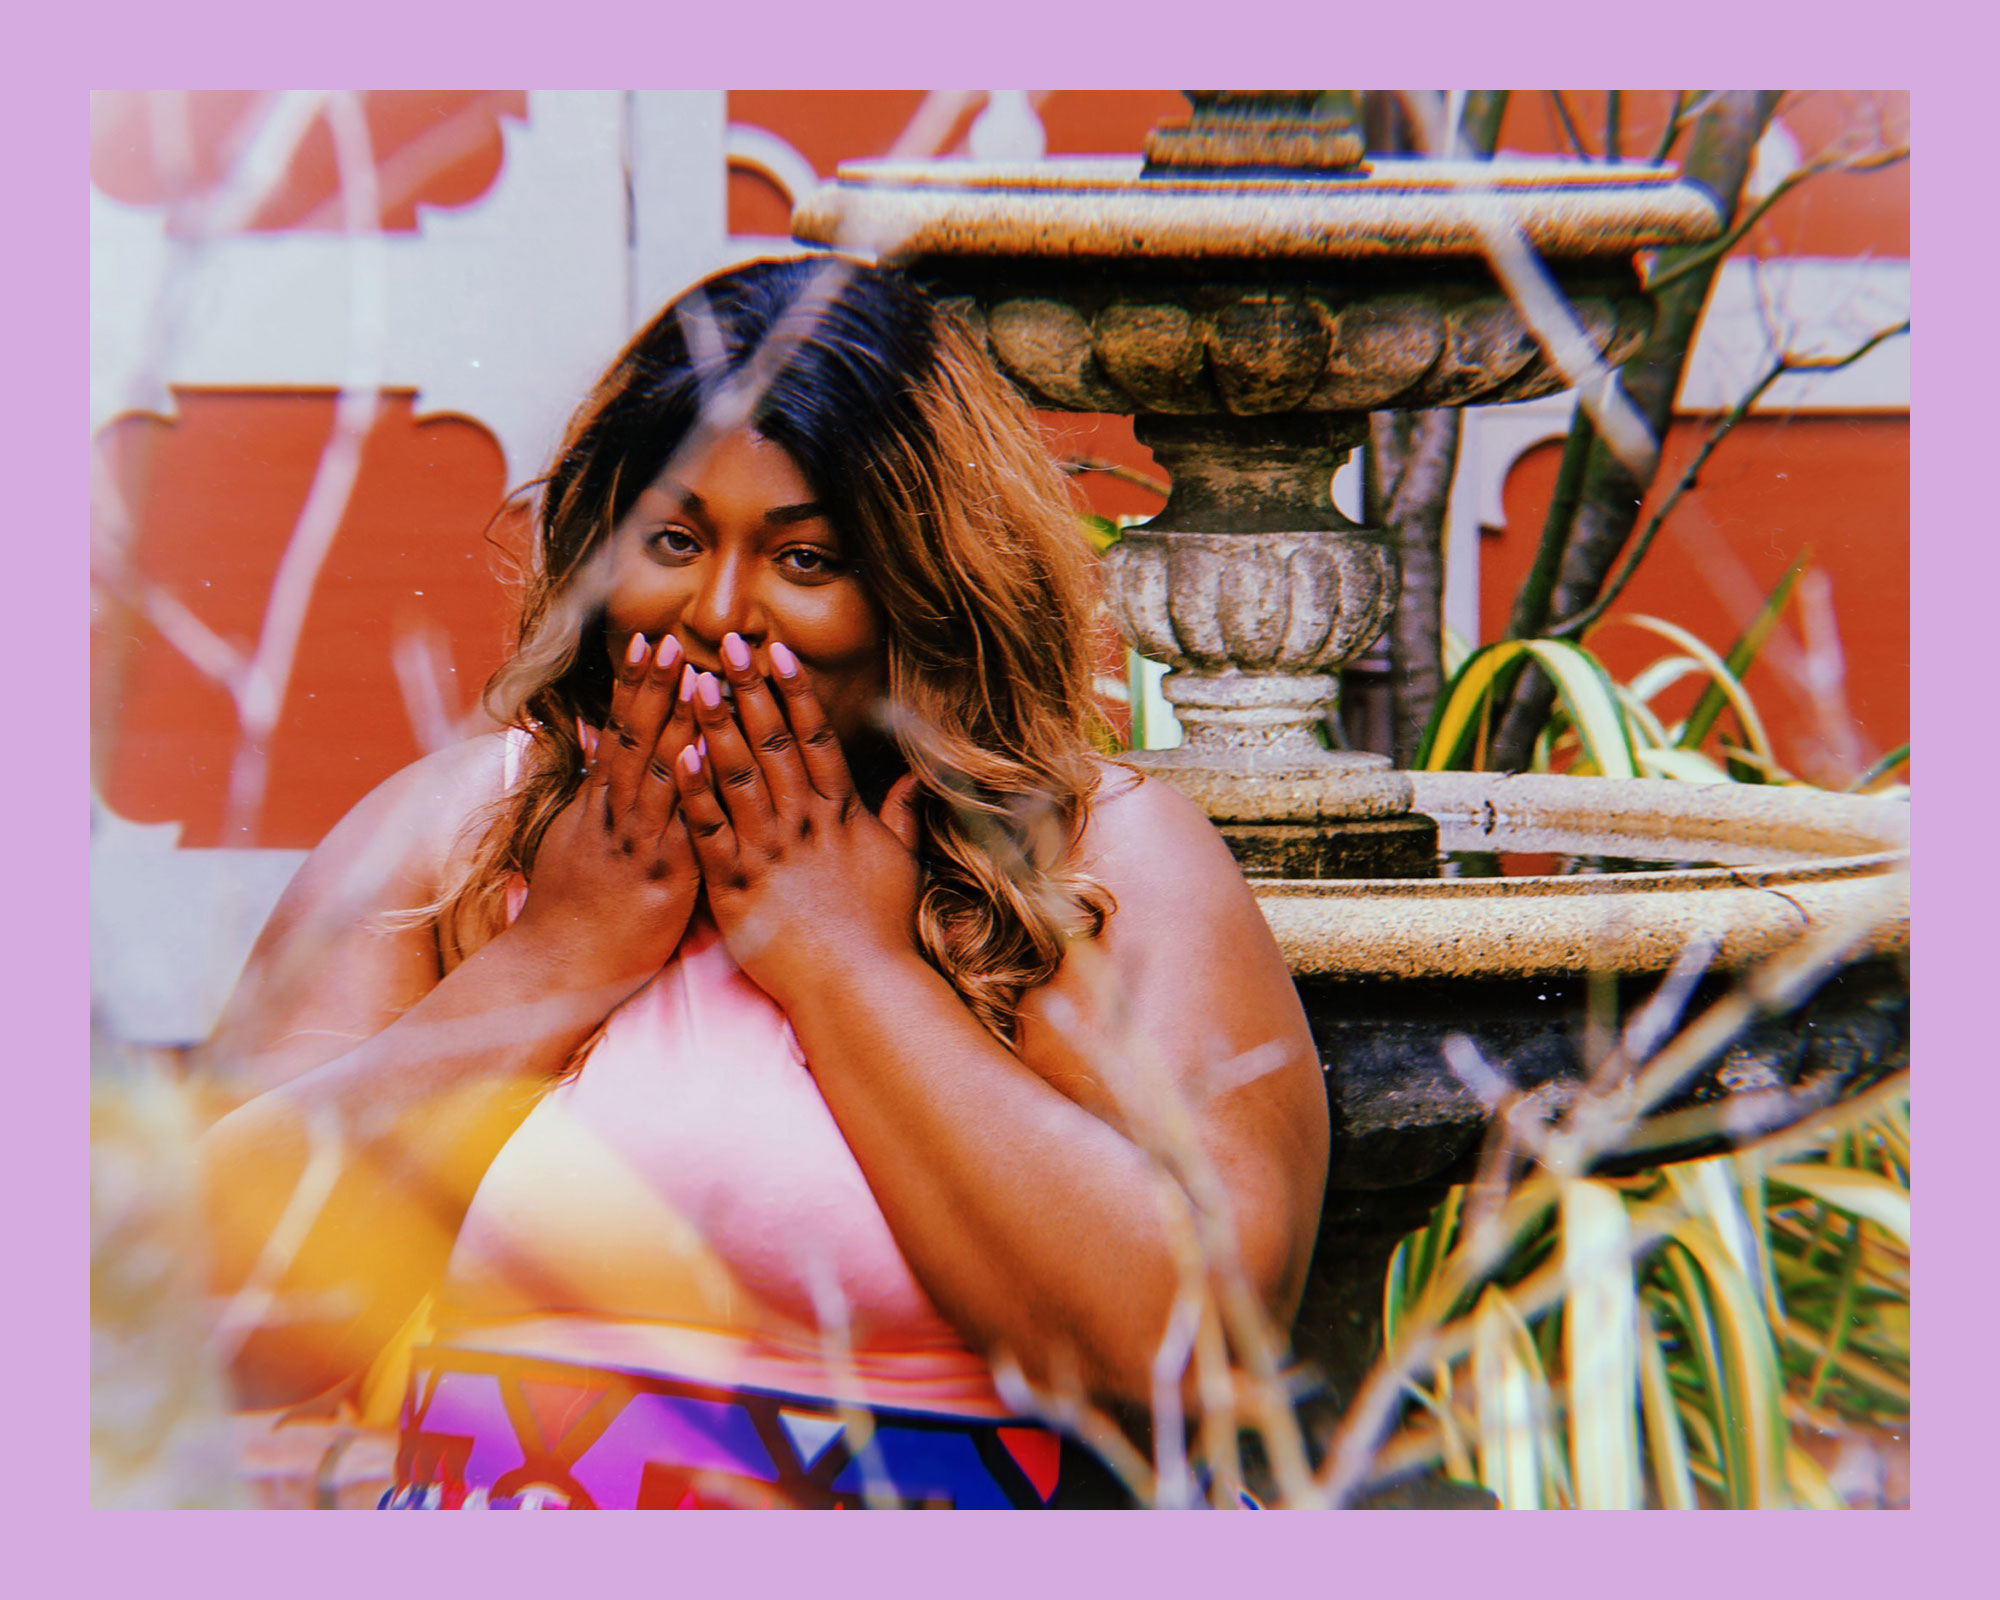 photo of a Black woman and activist, Aria Sa'id, standing outside in front of a fountain, surrounded by greenery, whilewearing a pink top and blue patterned skirt, holding her hands up to her mouth while smiling